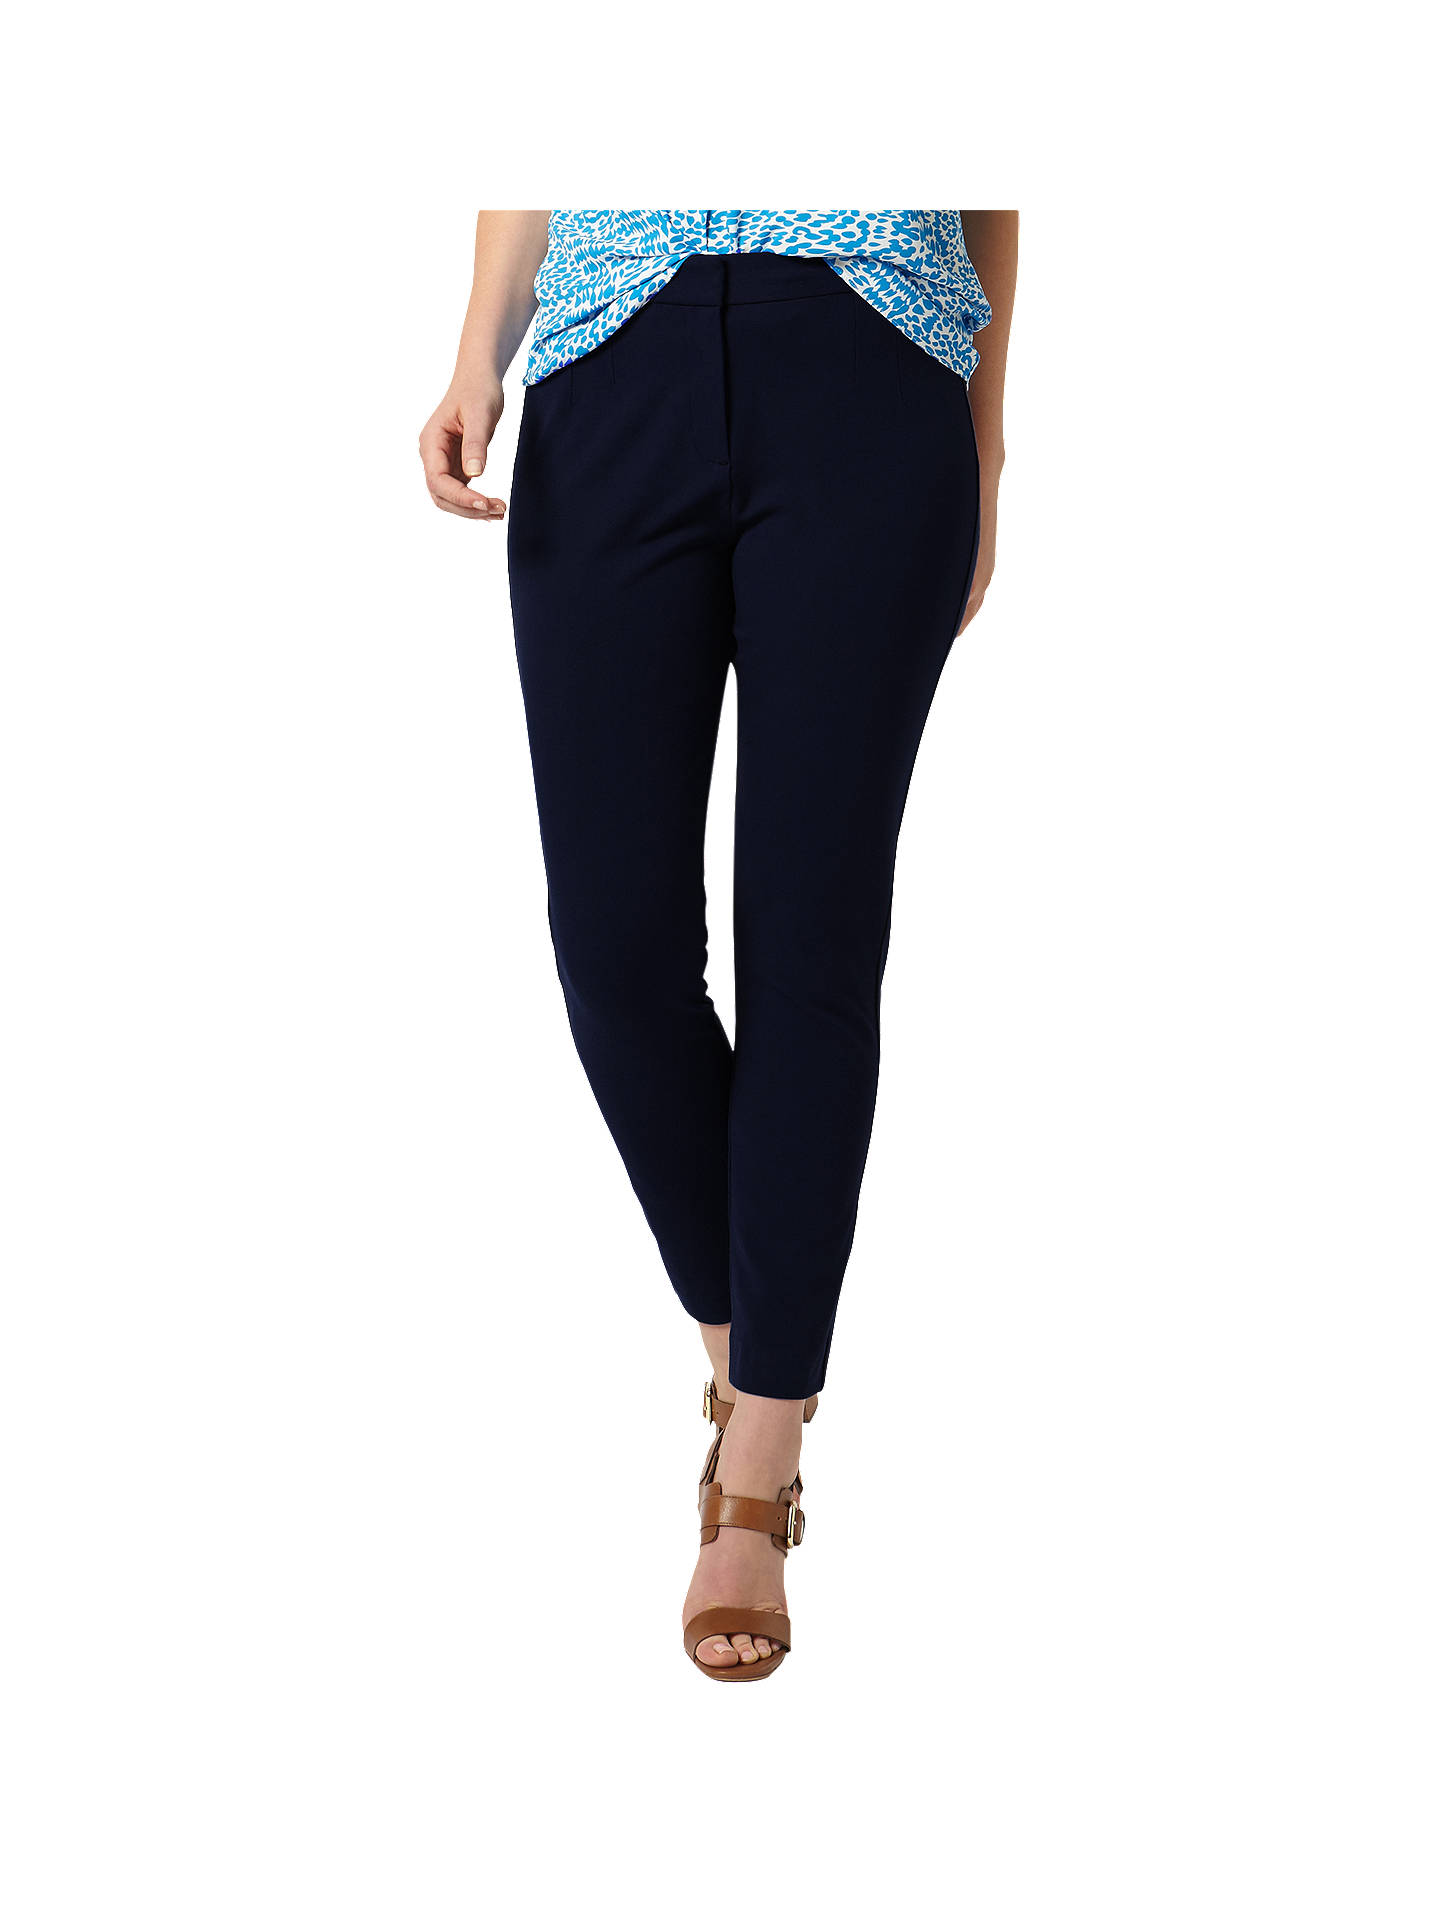 BuyStudio 8 Cressida Trousers, Navy, 14 Online at johnlewis.com